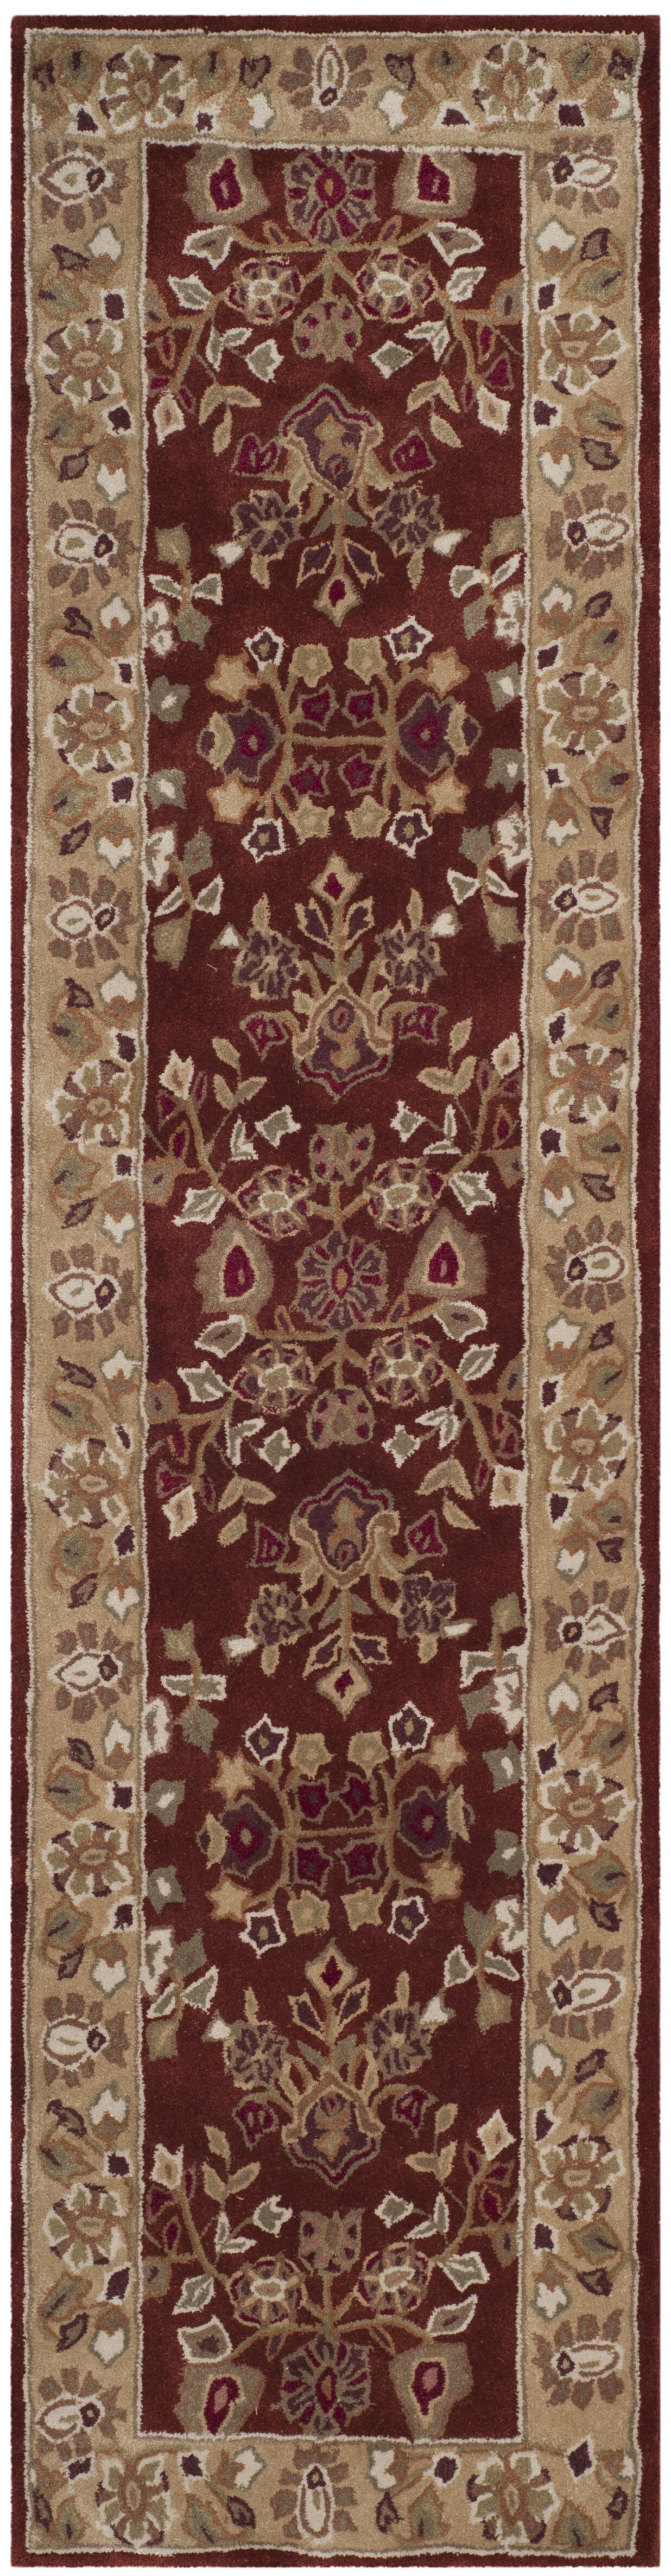 Marin Hand-Hooked Brown/Red Area Rug Rug Size: Rectangle 8' x 10'